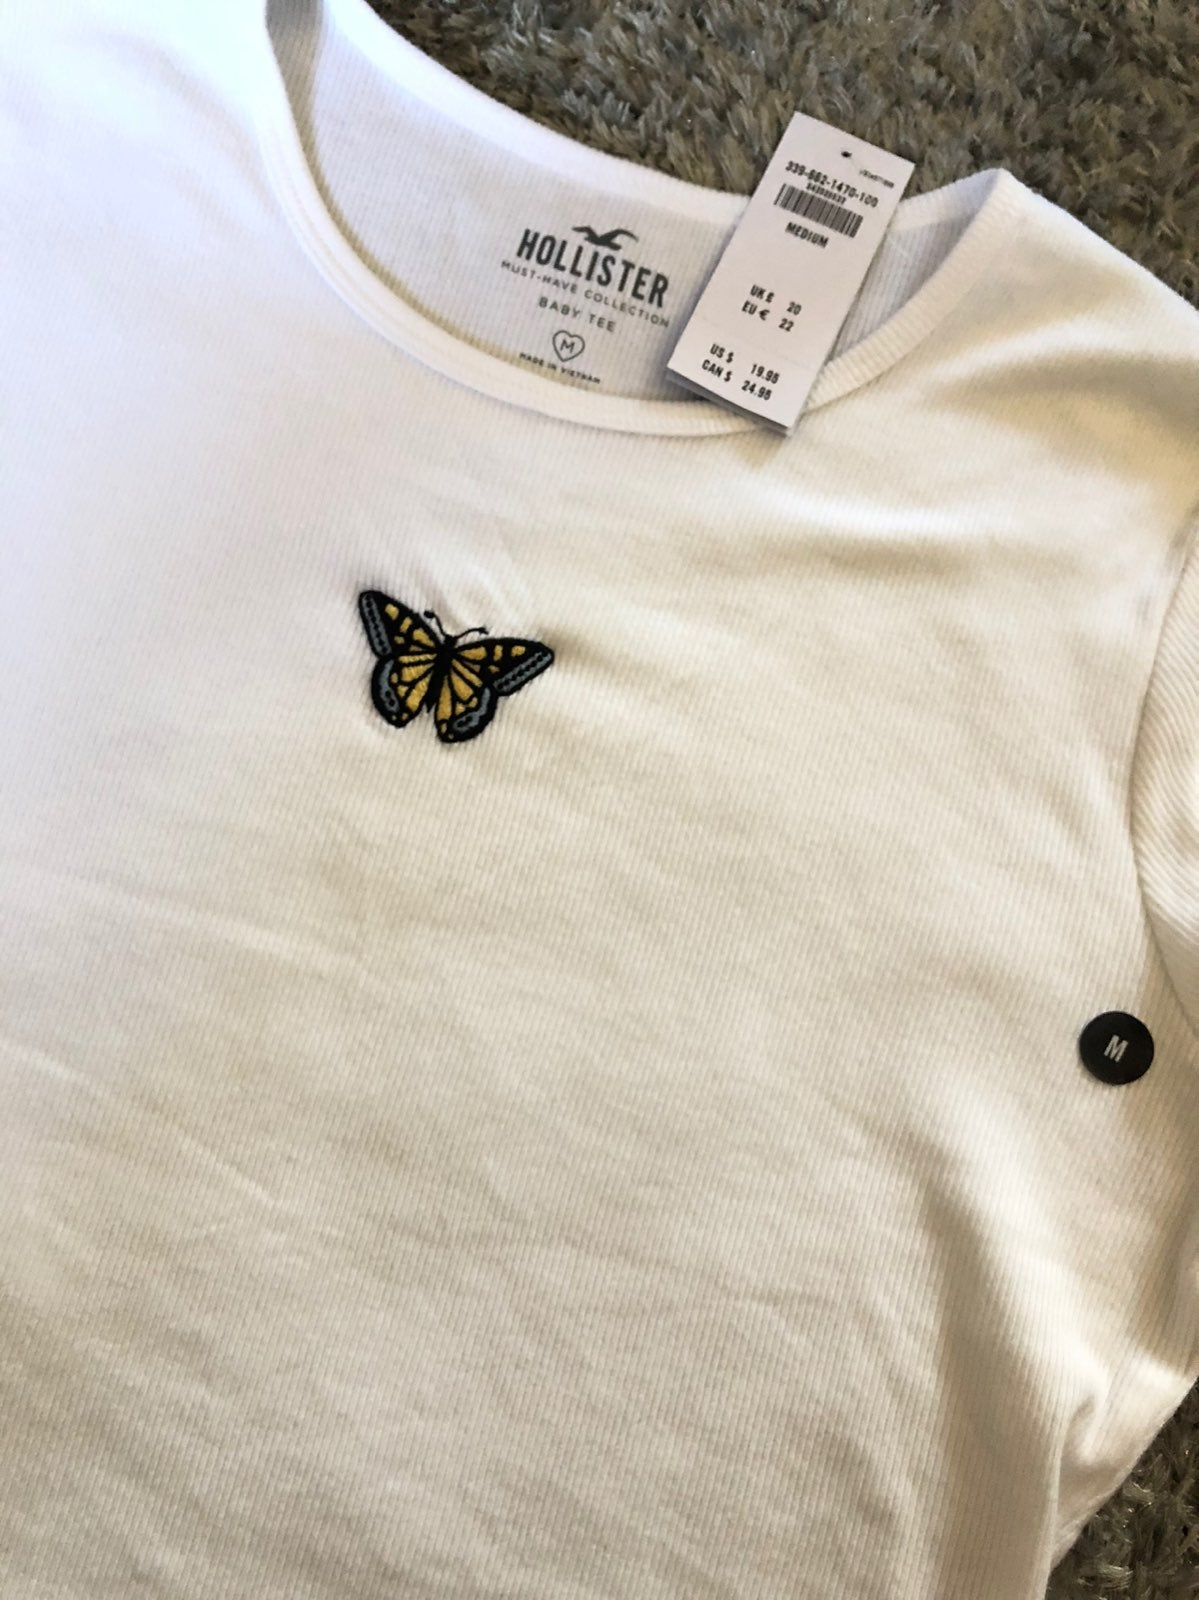 Holister butterfly top